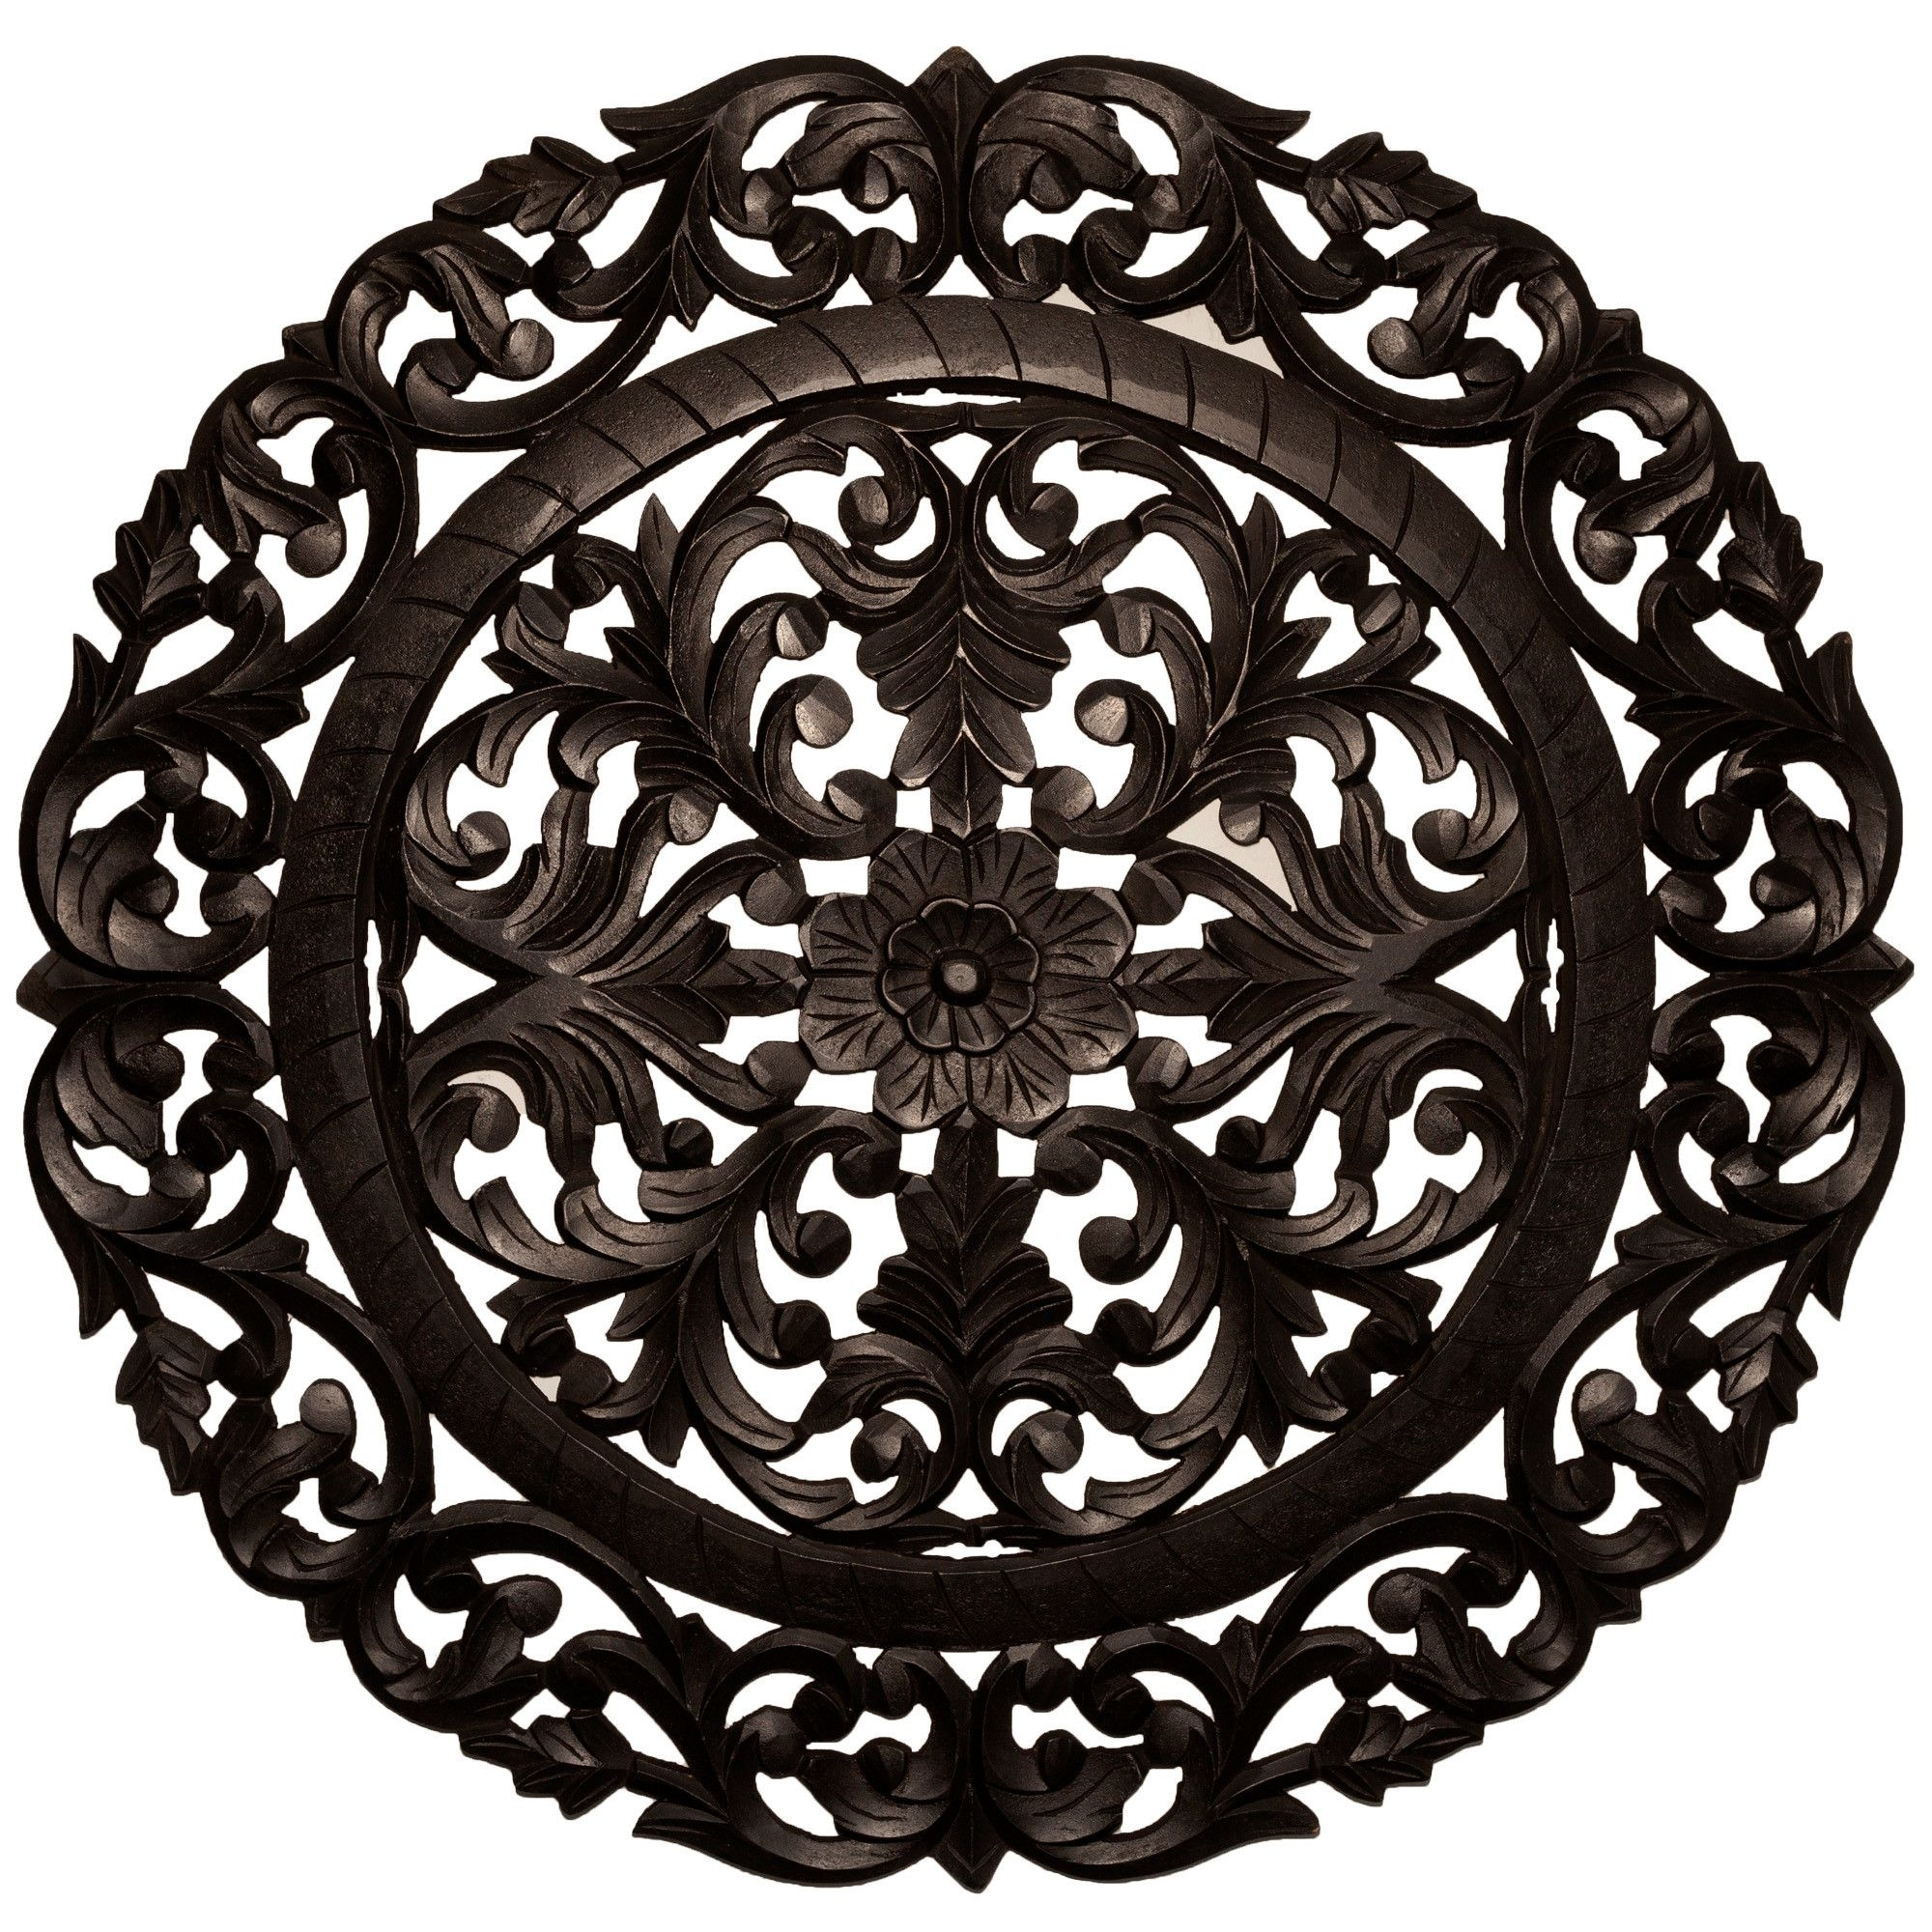 Leroy Handcrafted Medallion Wall Decor | Wayfair | Building The Nest With Regard To Most Popular Medallion Wall Art (View 18 of 20)